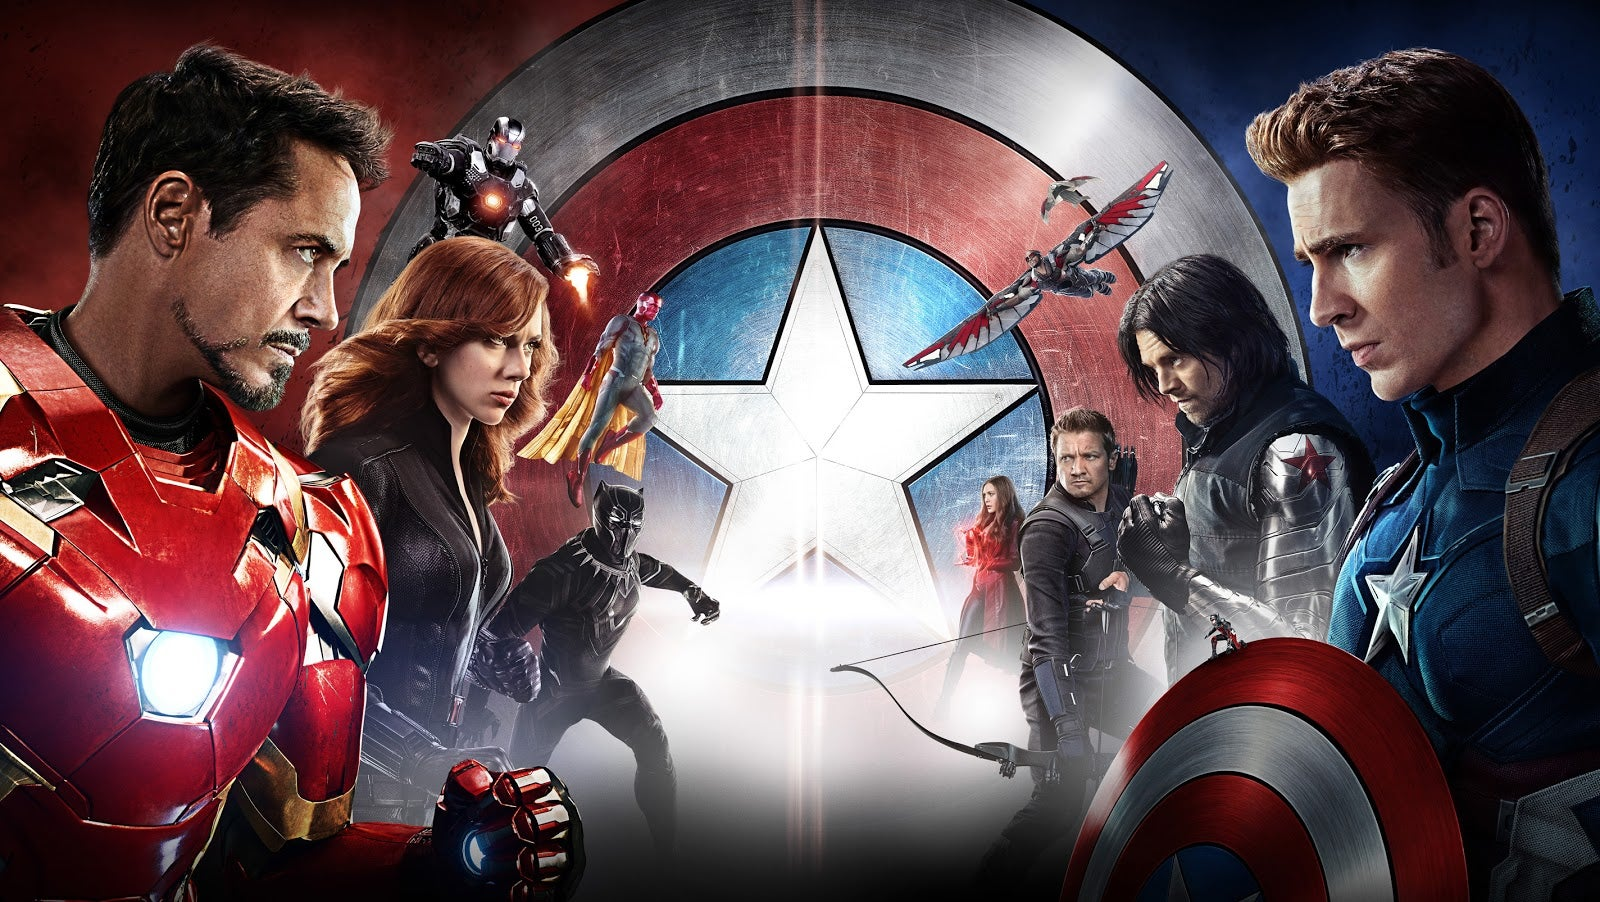 captain-america captain-america-civil-war clips tag-in-real-life marvel movies